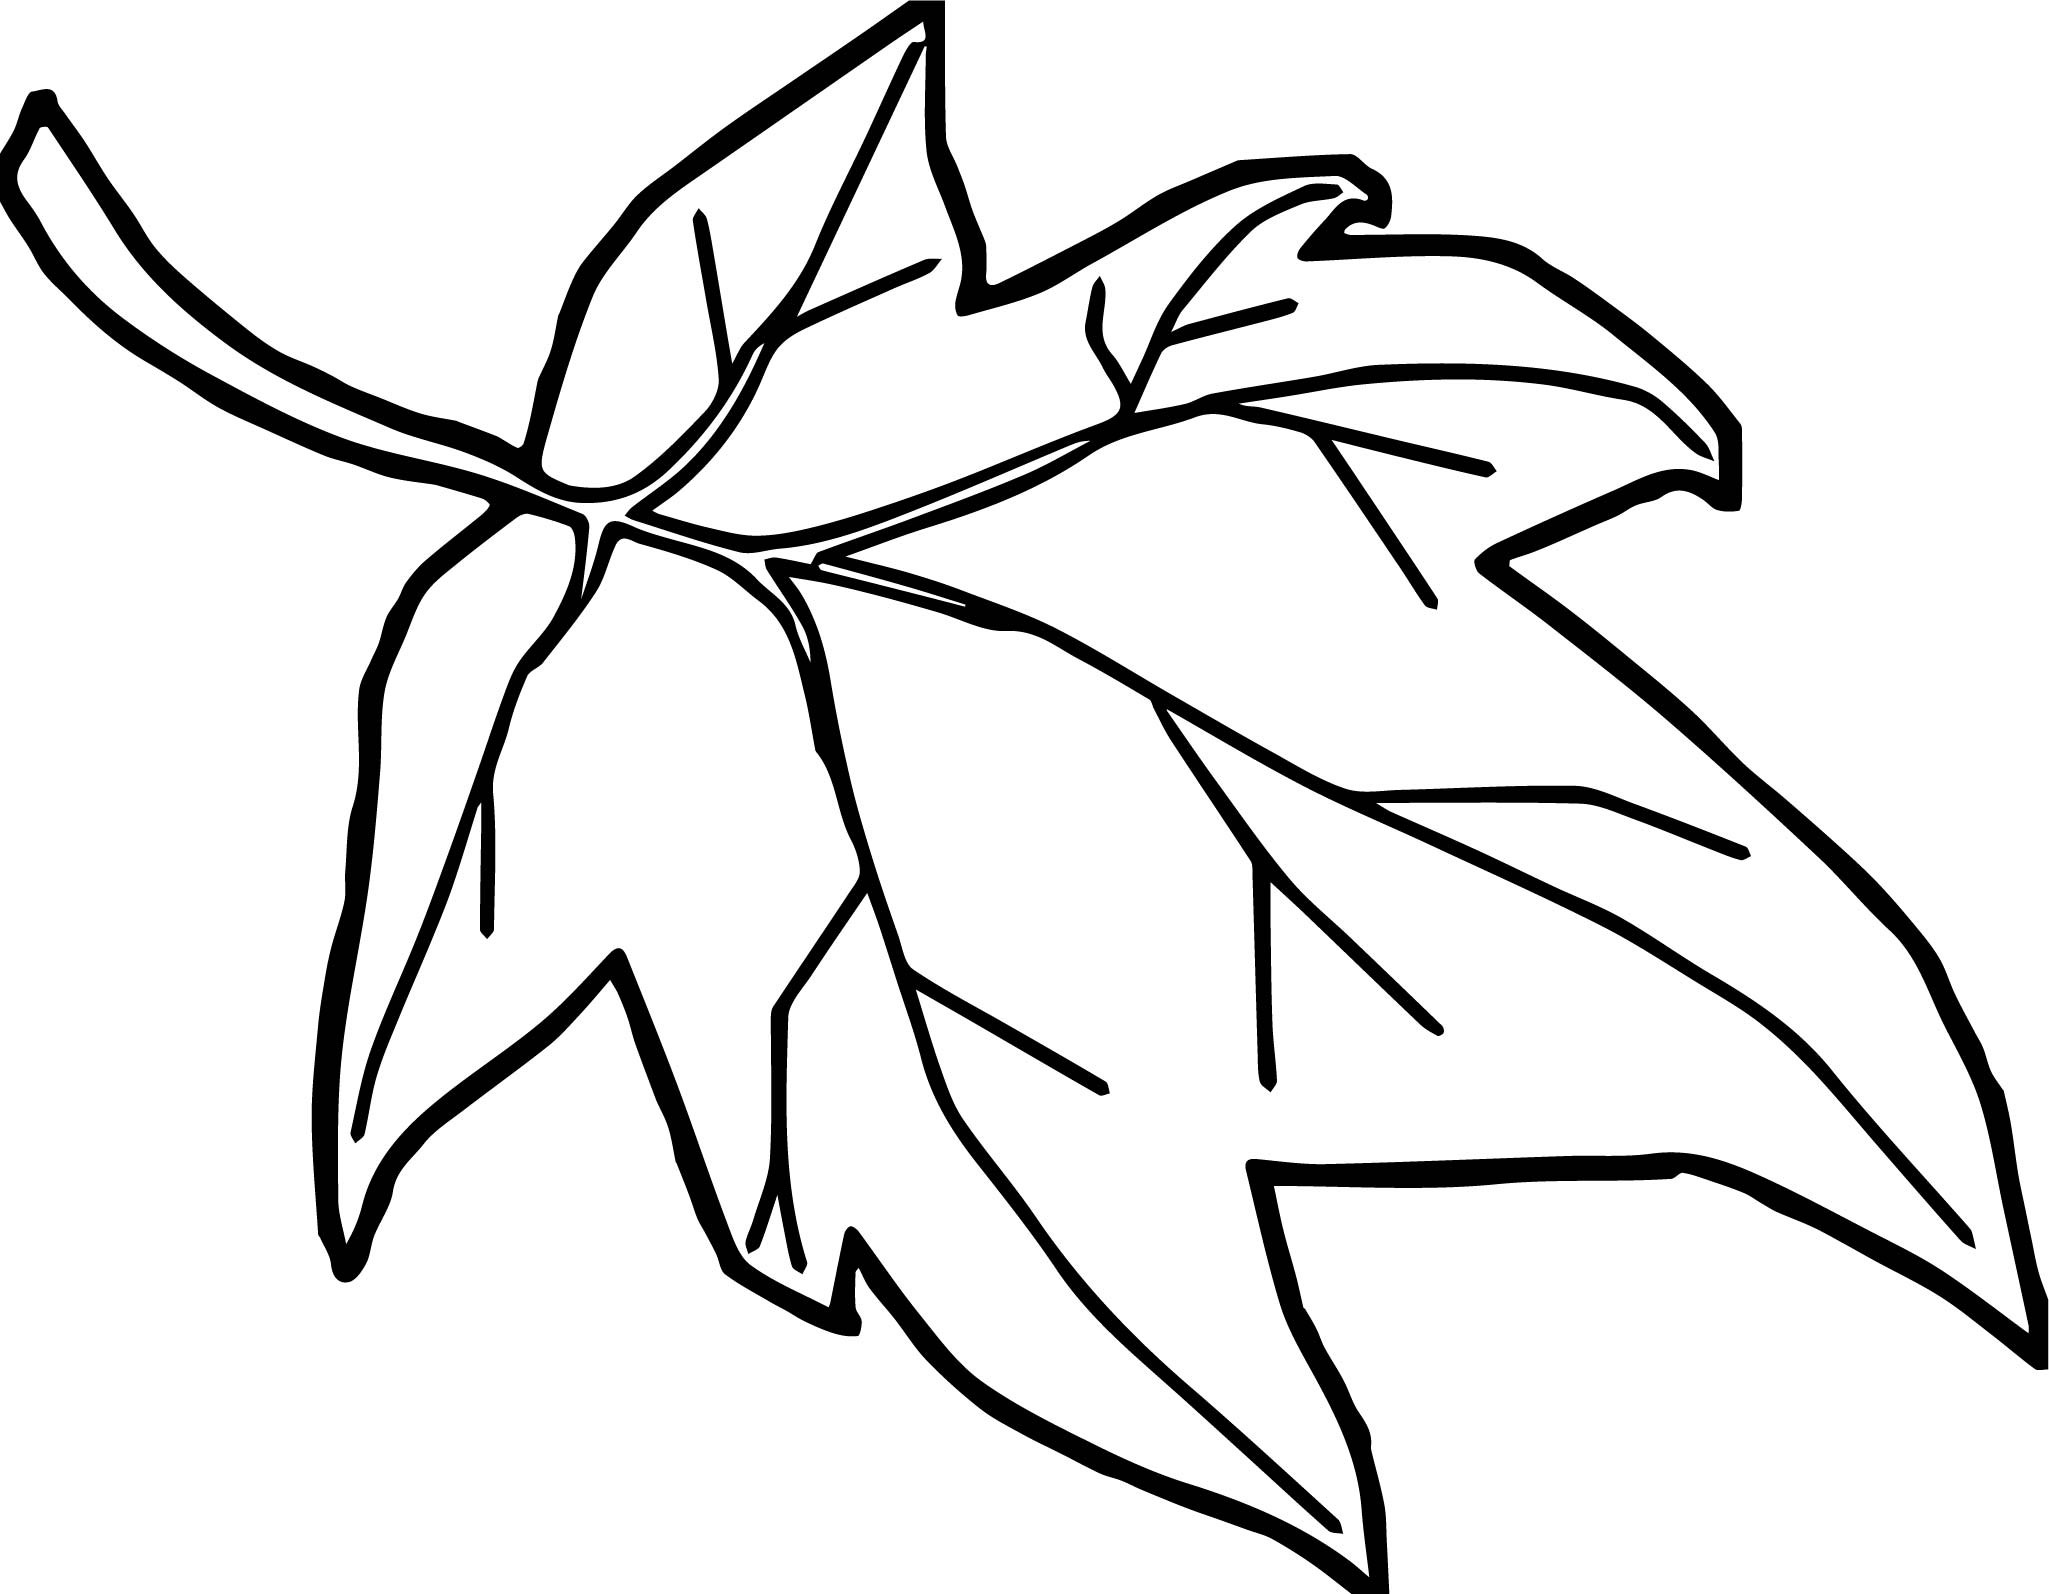 2049x1594 Cartoon Leaf Coloring Pages Free Draw To Color